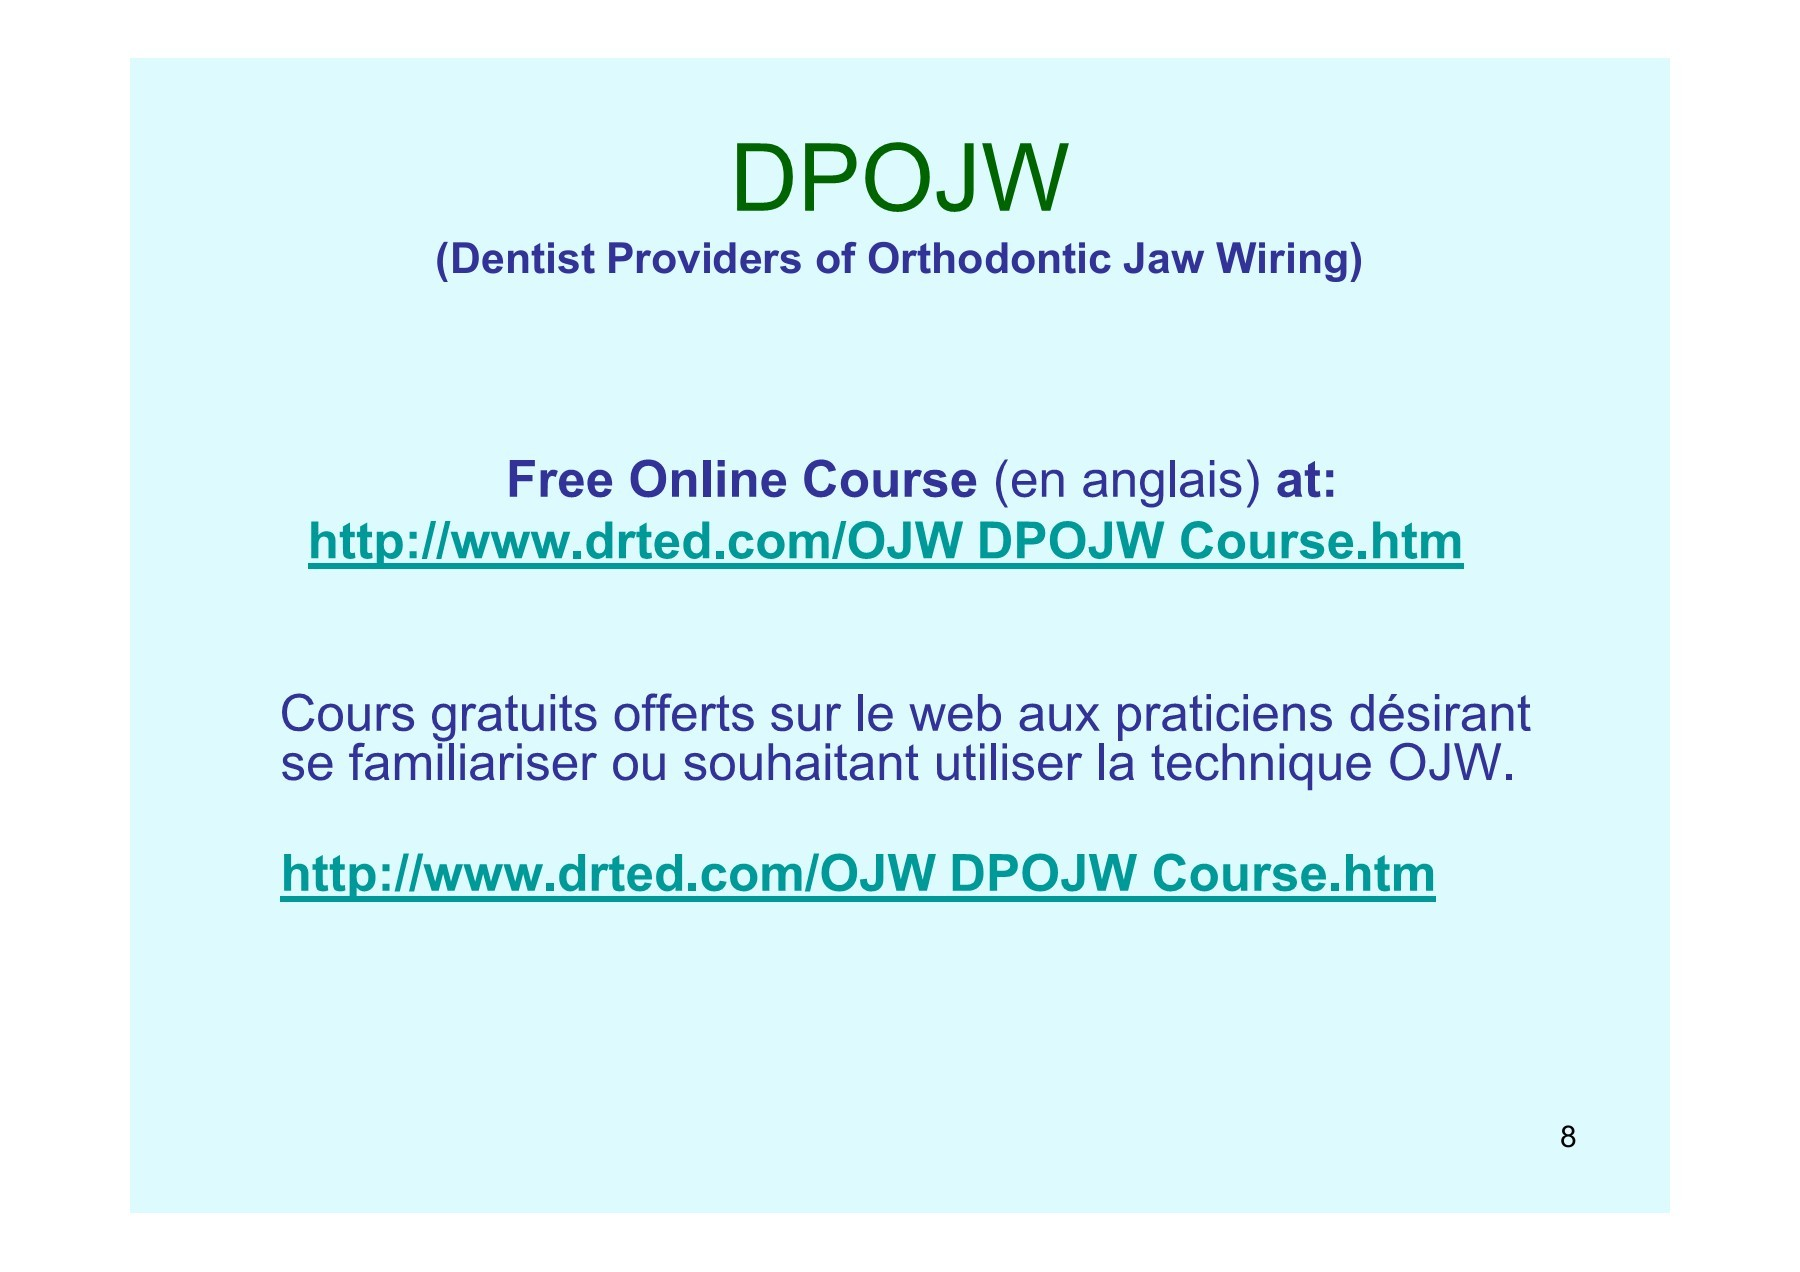 Fabulous Orthodontic Jaw Wiring The Dental Professions Role In The Focusky Wiring 101 Orsalhahutechinfo